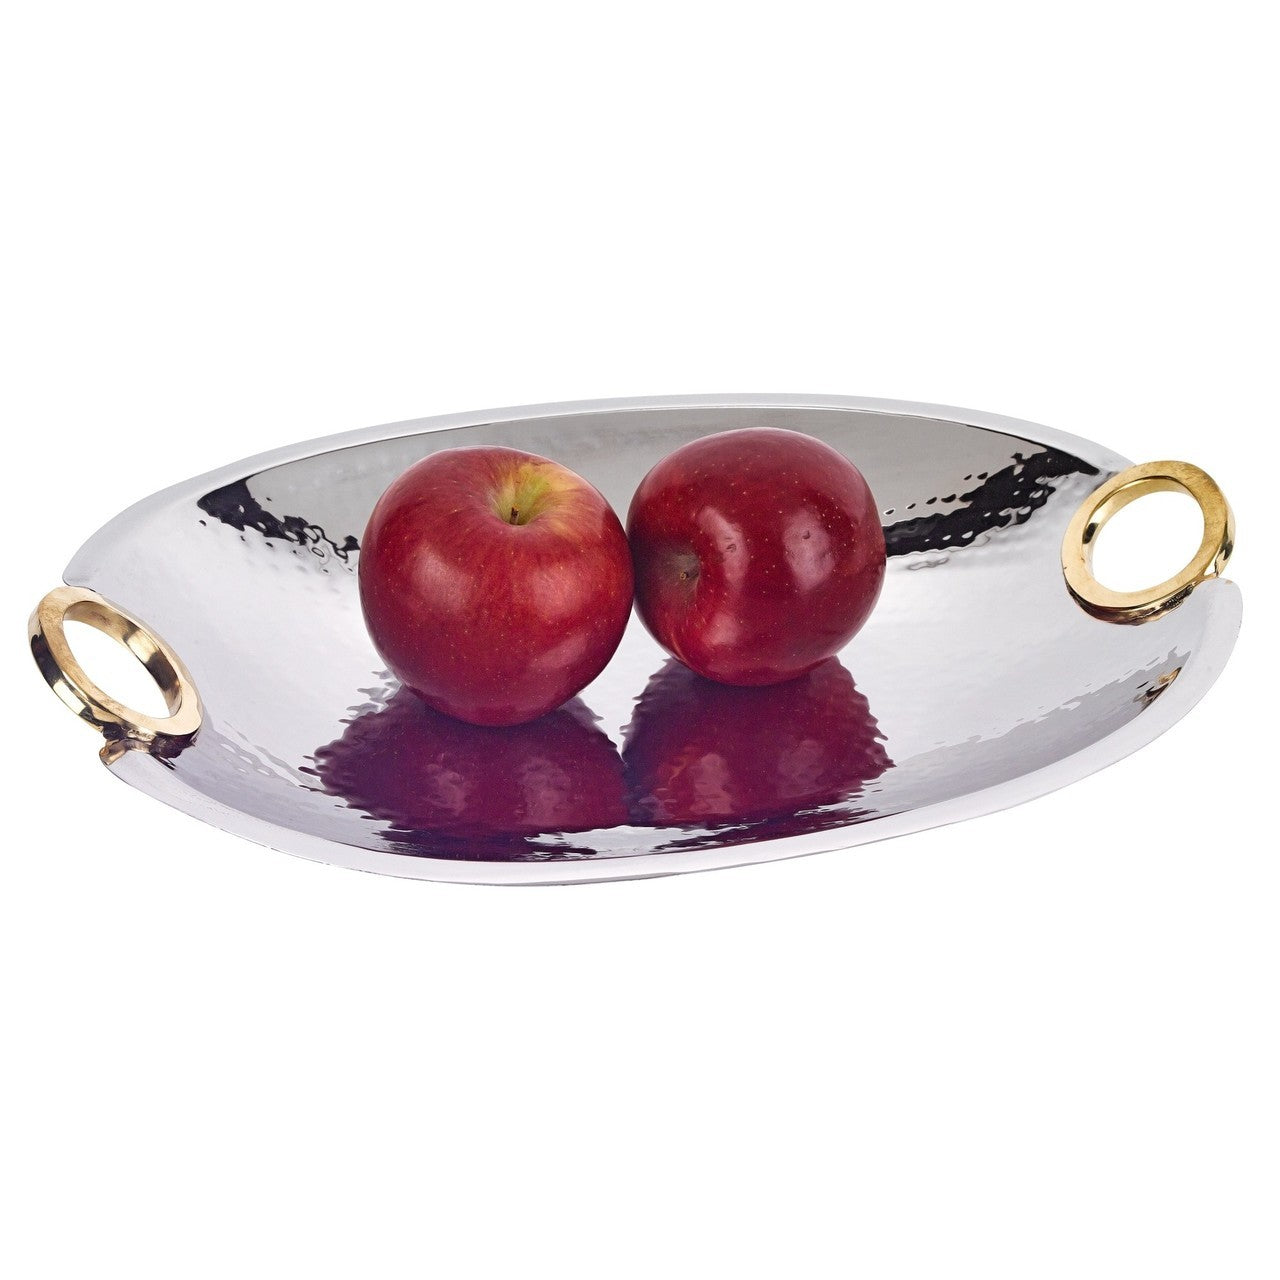 Rings Stainless Steel and Brass Oval Bowl